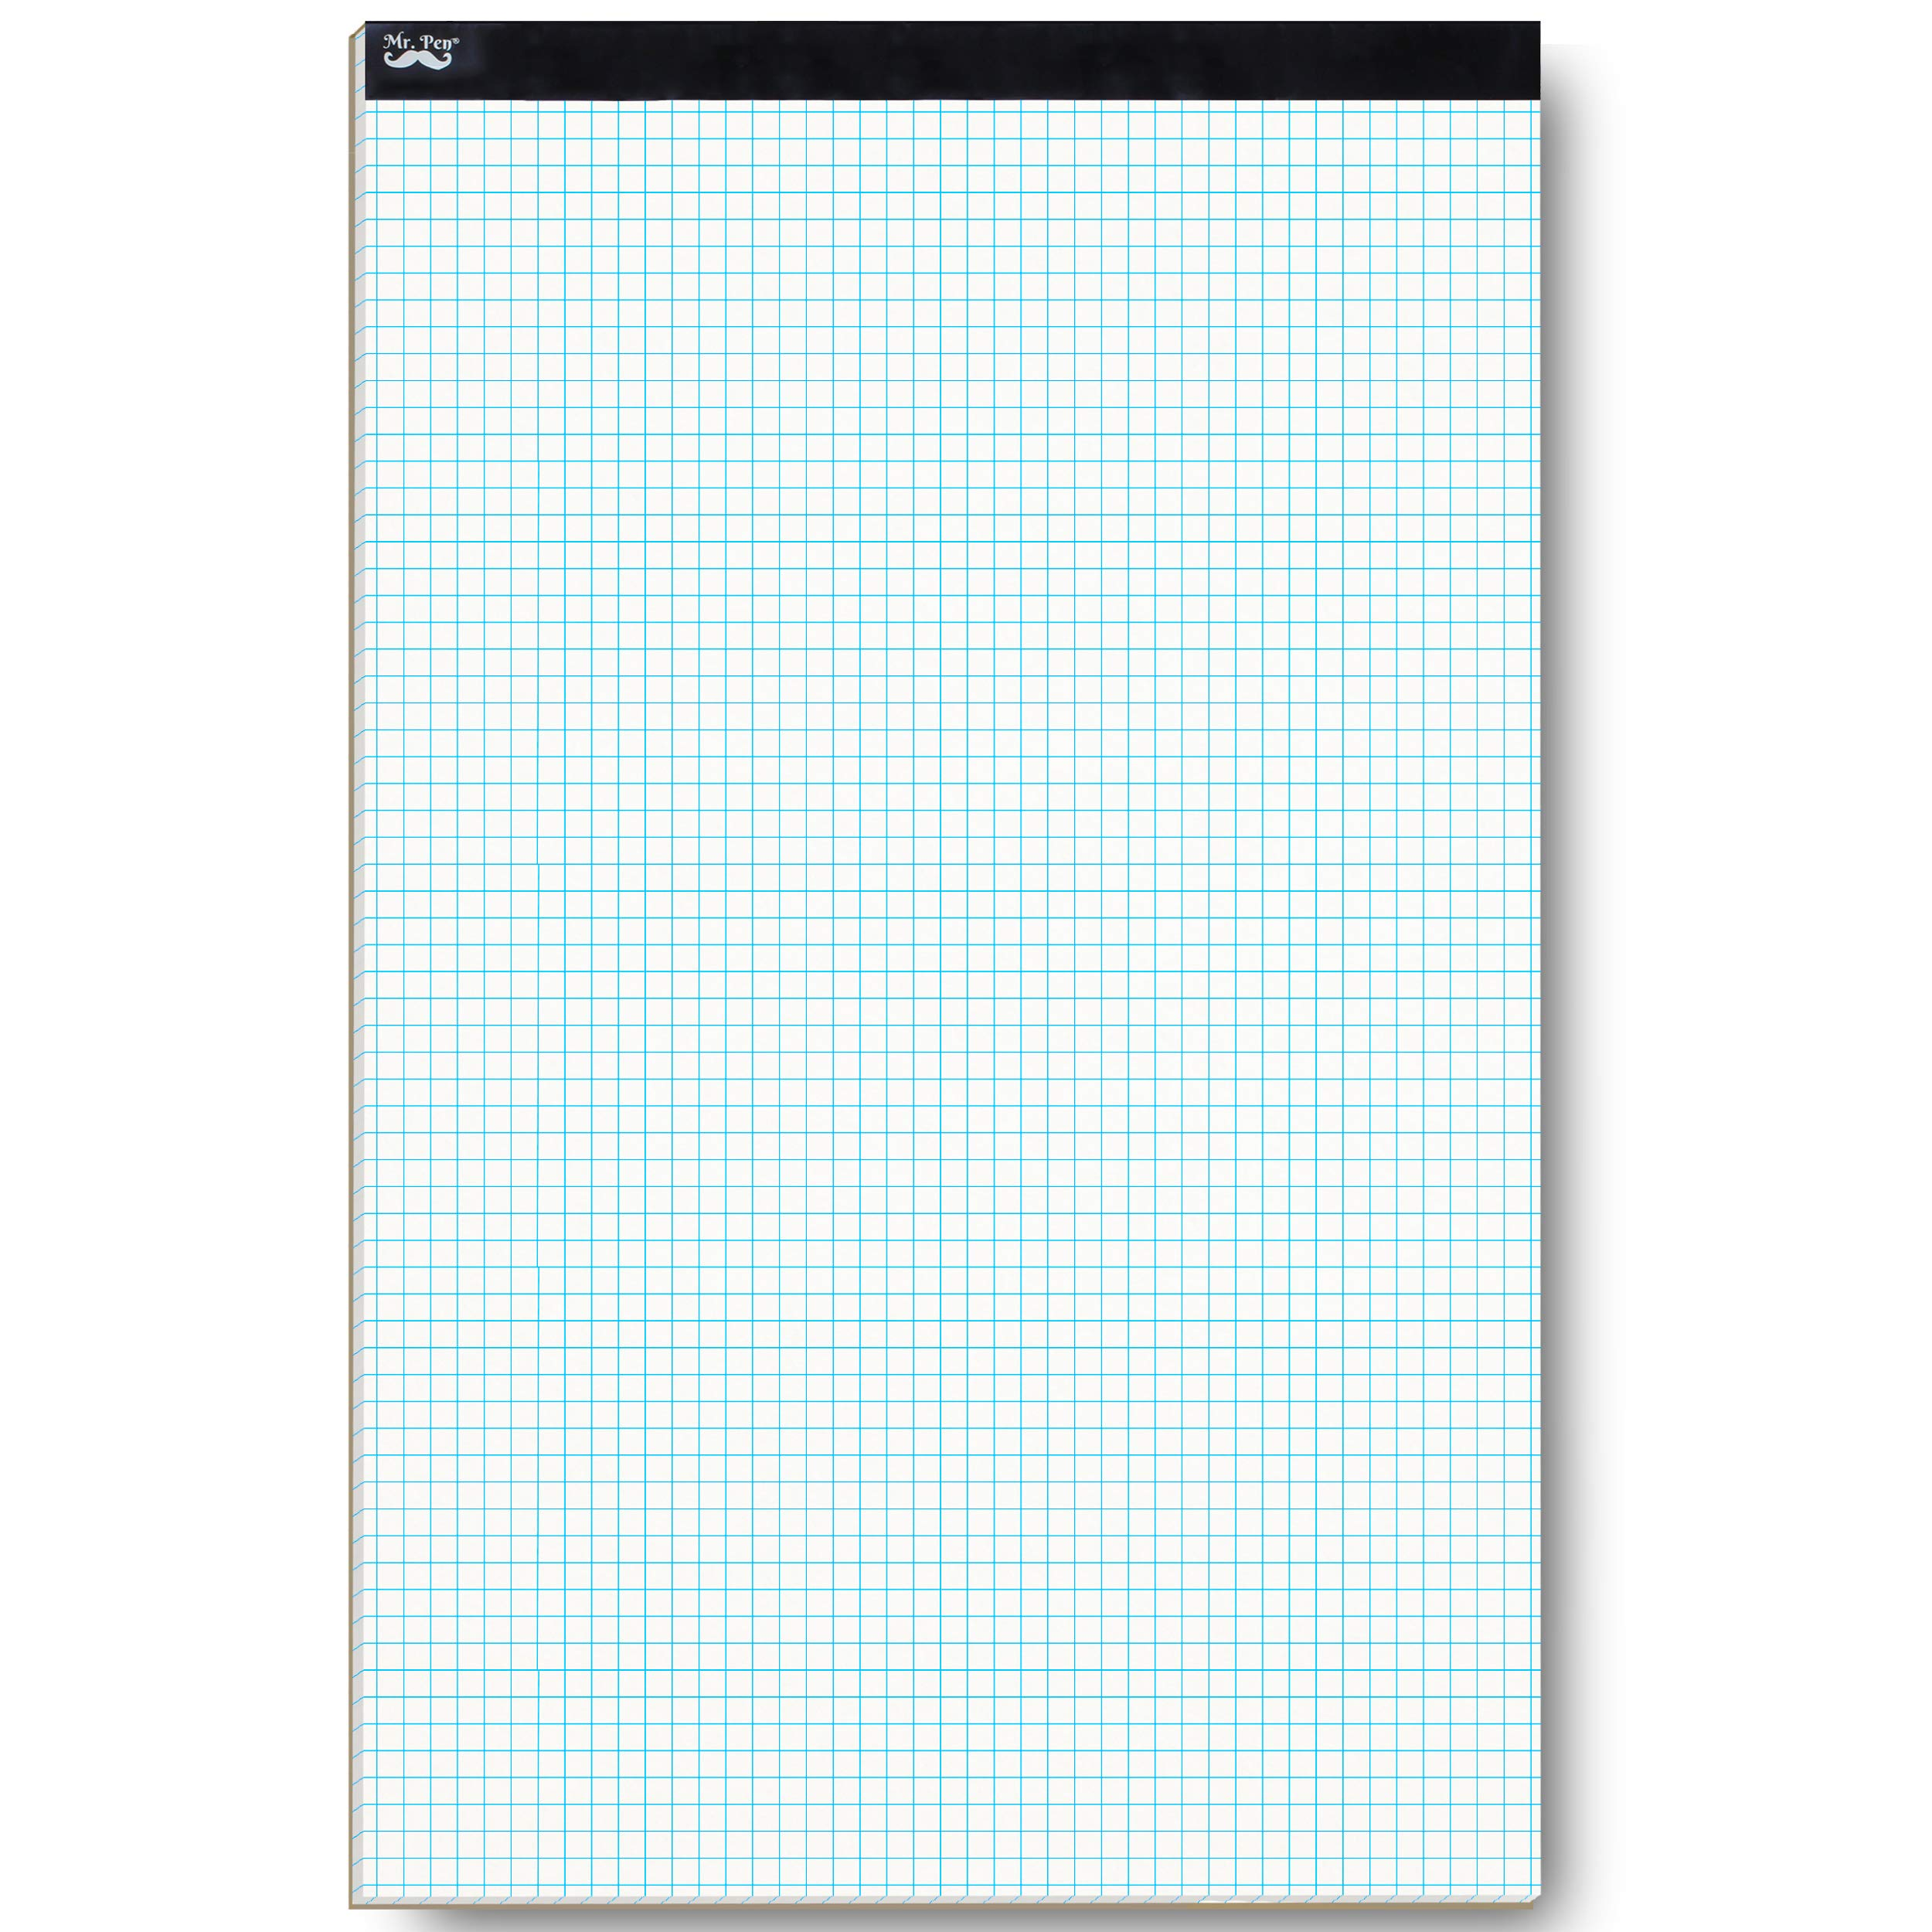 """Mr. Pen- Graph Paper, Grid Paper, 22 Sheet Papers, 4x4 (4 Squares per inch), 17""""x11"""", Drafting Paper, Squared Paper, Blueprint Paper, Architectural Paper, Computation Pad, Quadrille Writing Paper, Pad"""